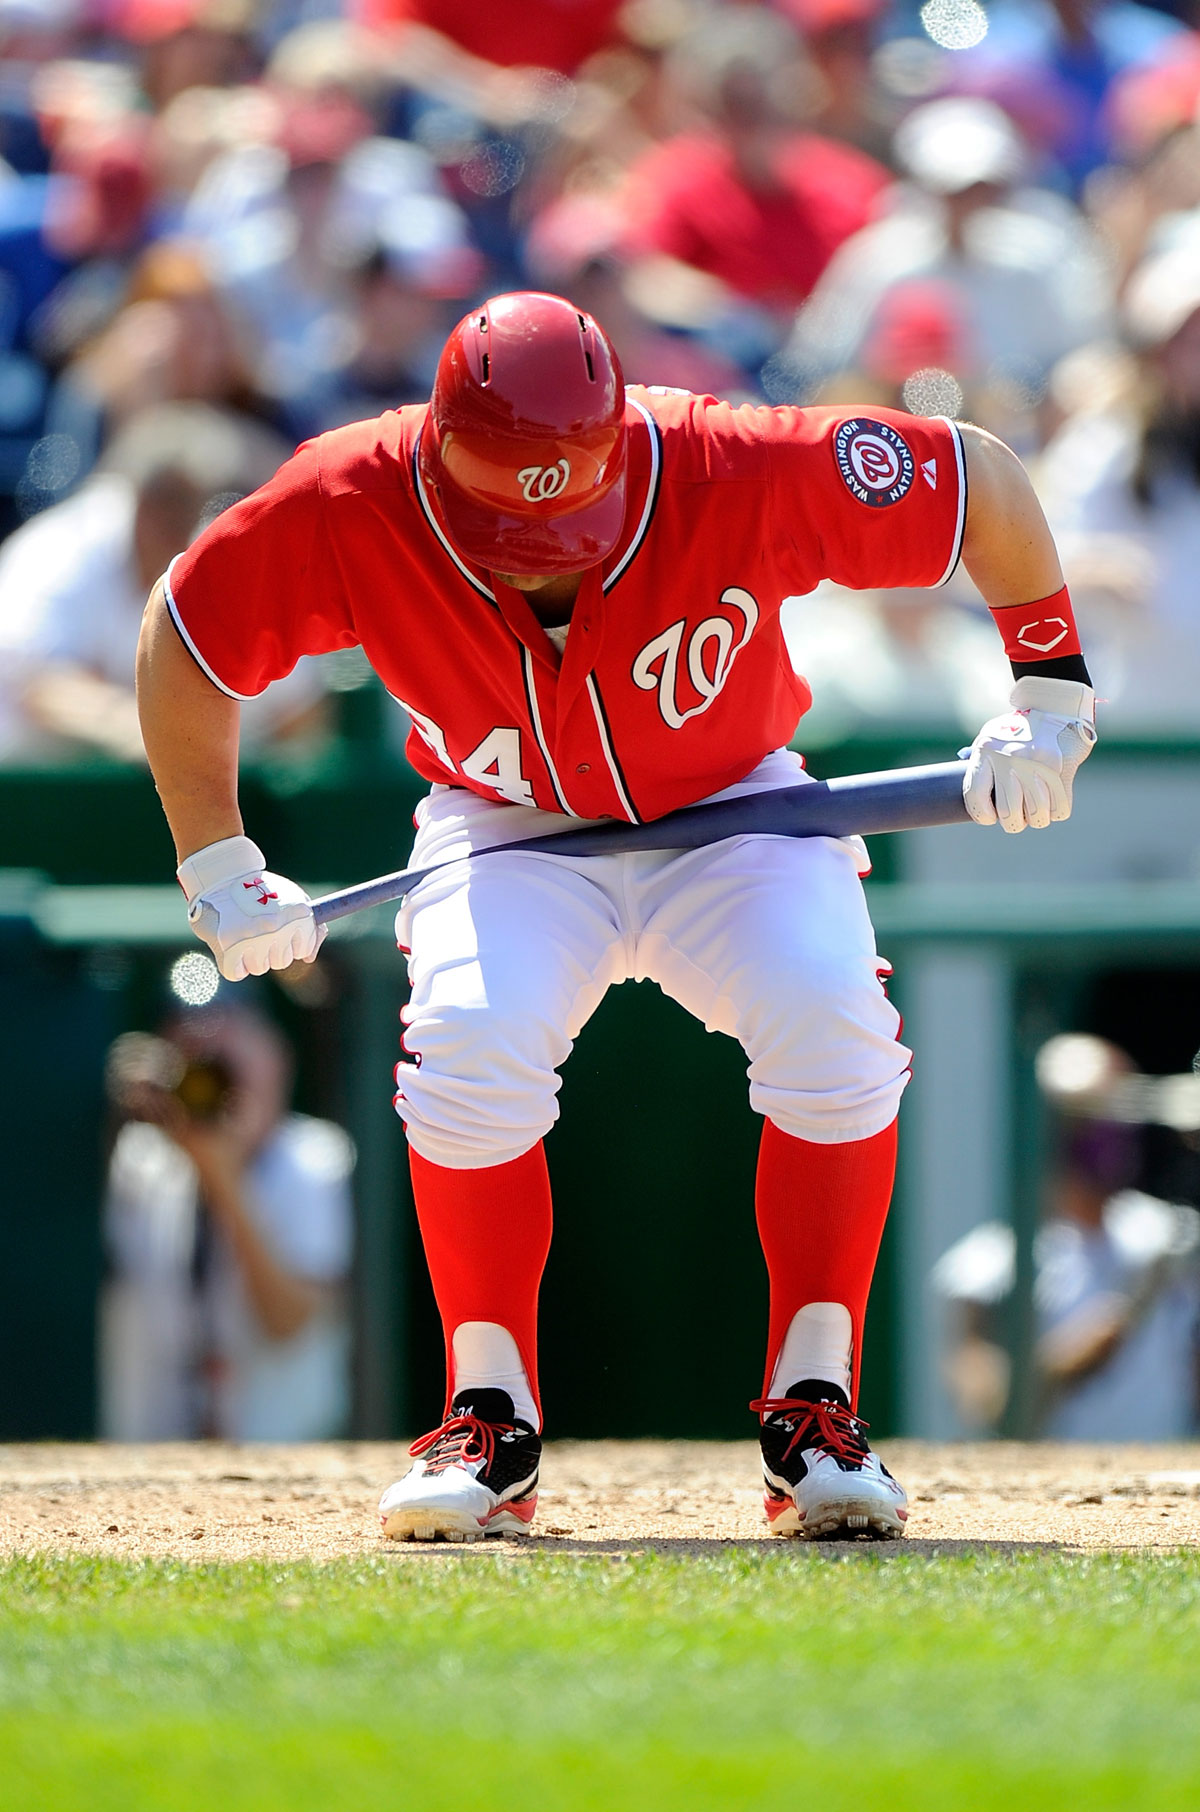 On the Nationals and extra innings